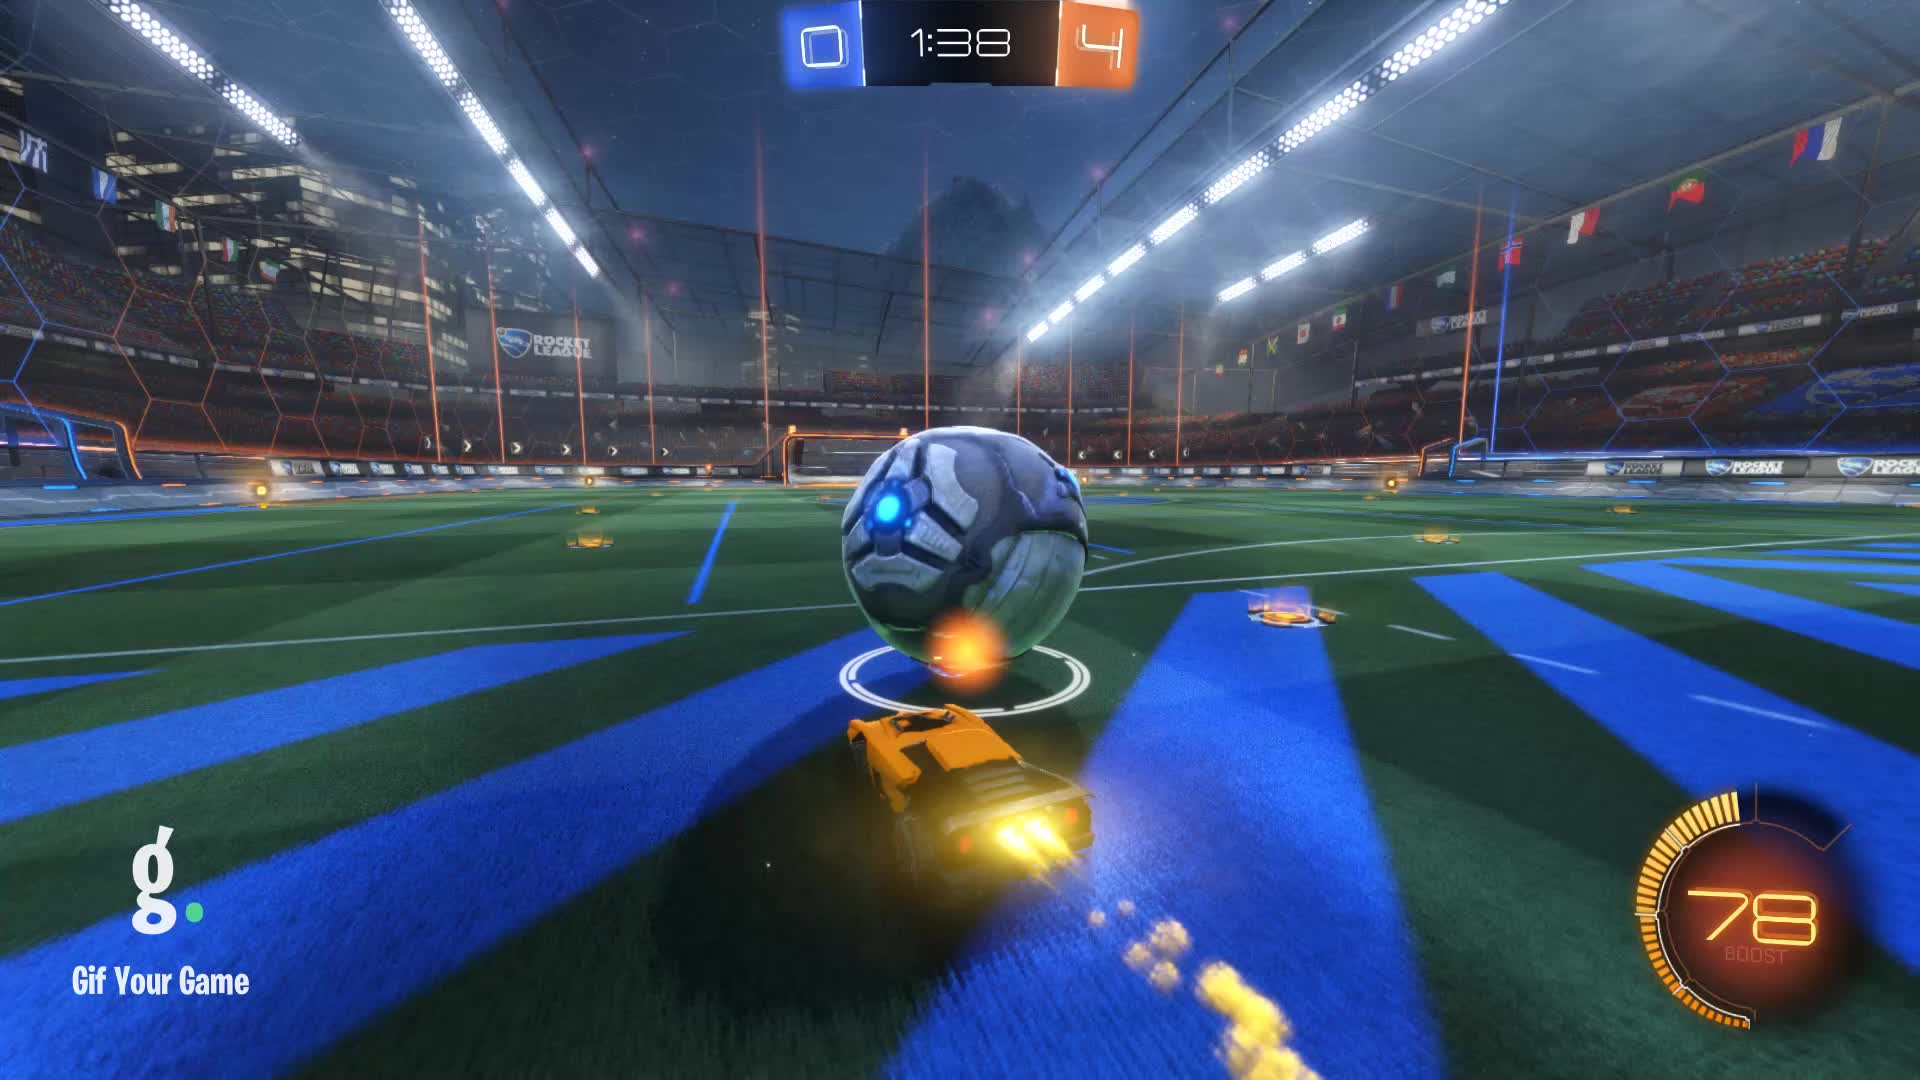 Gif Your Game, GifYourGame, Goal, JAG | Purple, Rocket League, RocketLeague, Goal 5: JAG | Purple GIFs